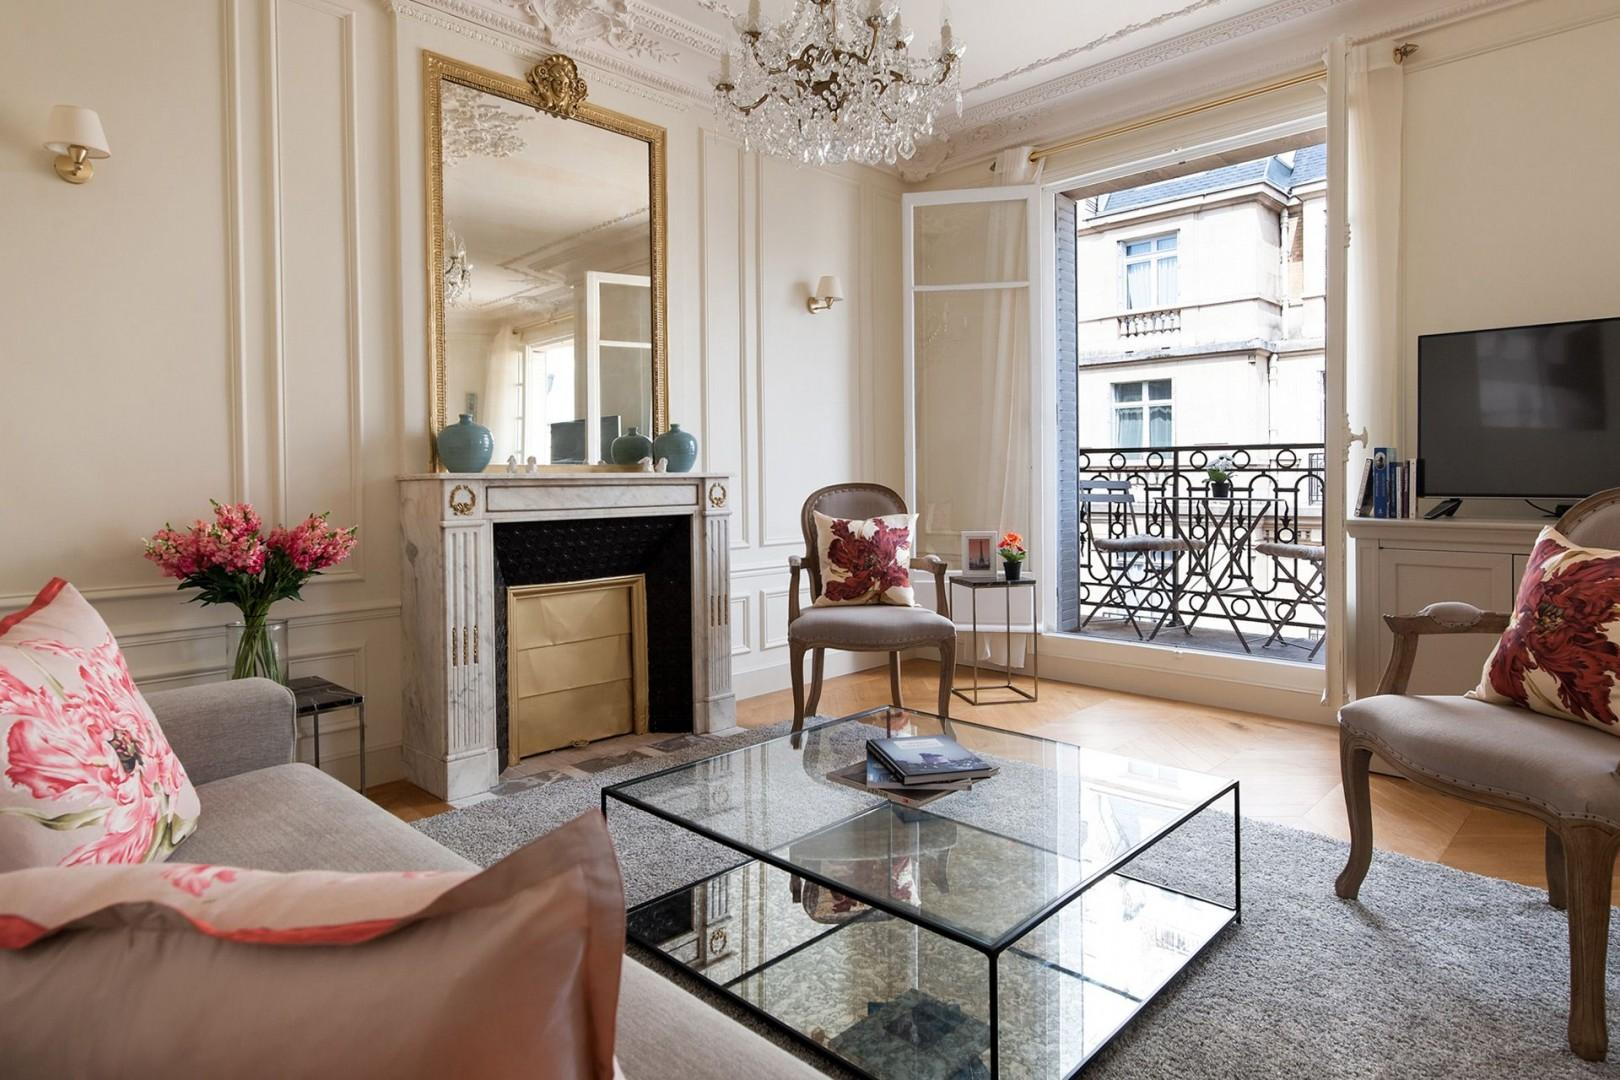 Large French windows let in lots of light into the living room.